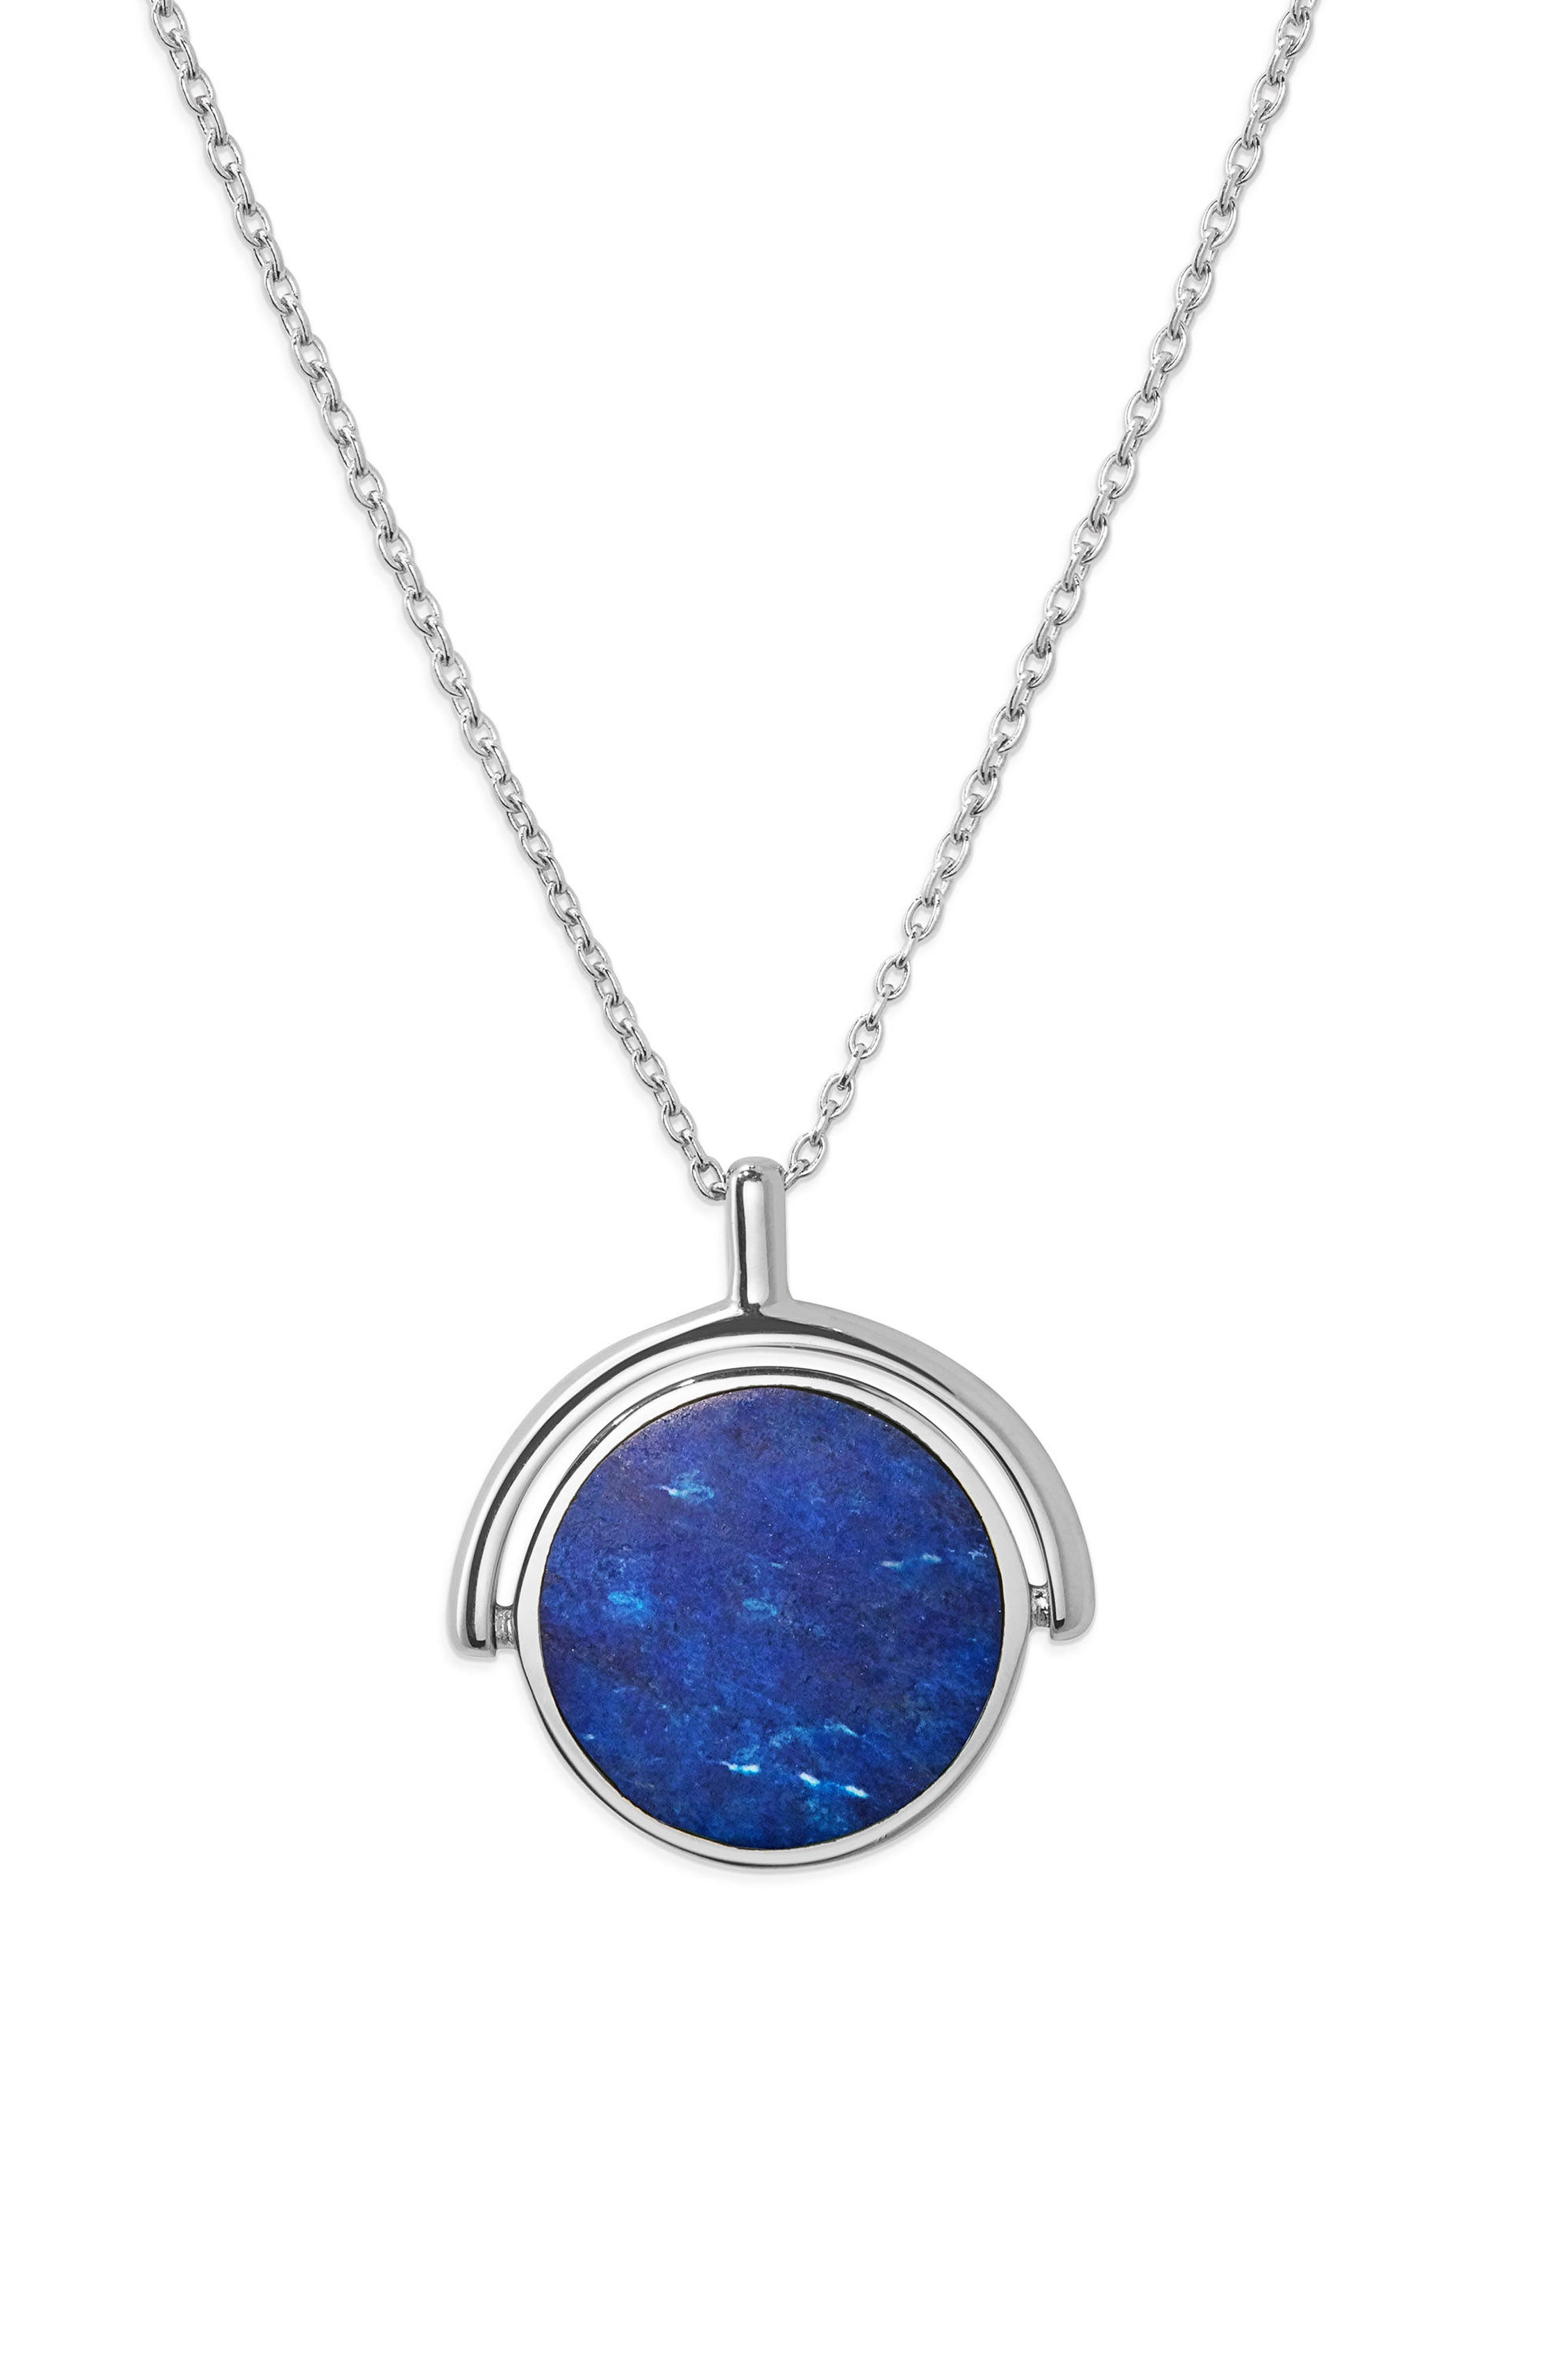 Alternate Image 1 Selected - Shinola Rotating Signet Pendant Necklace